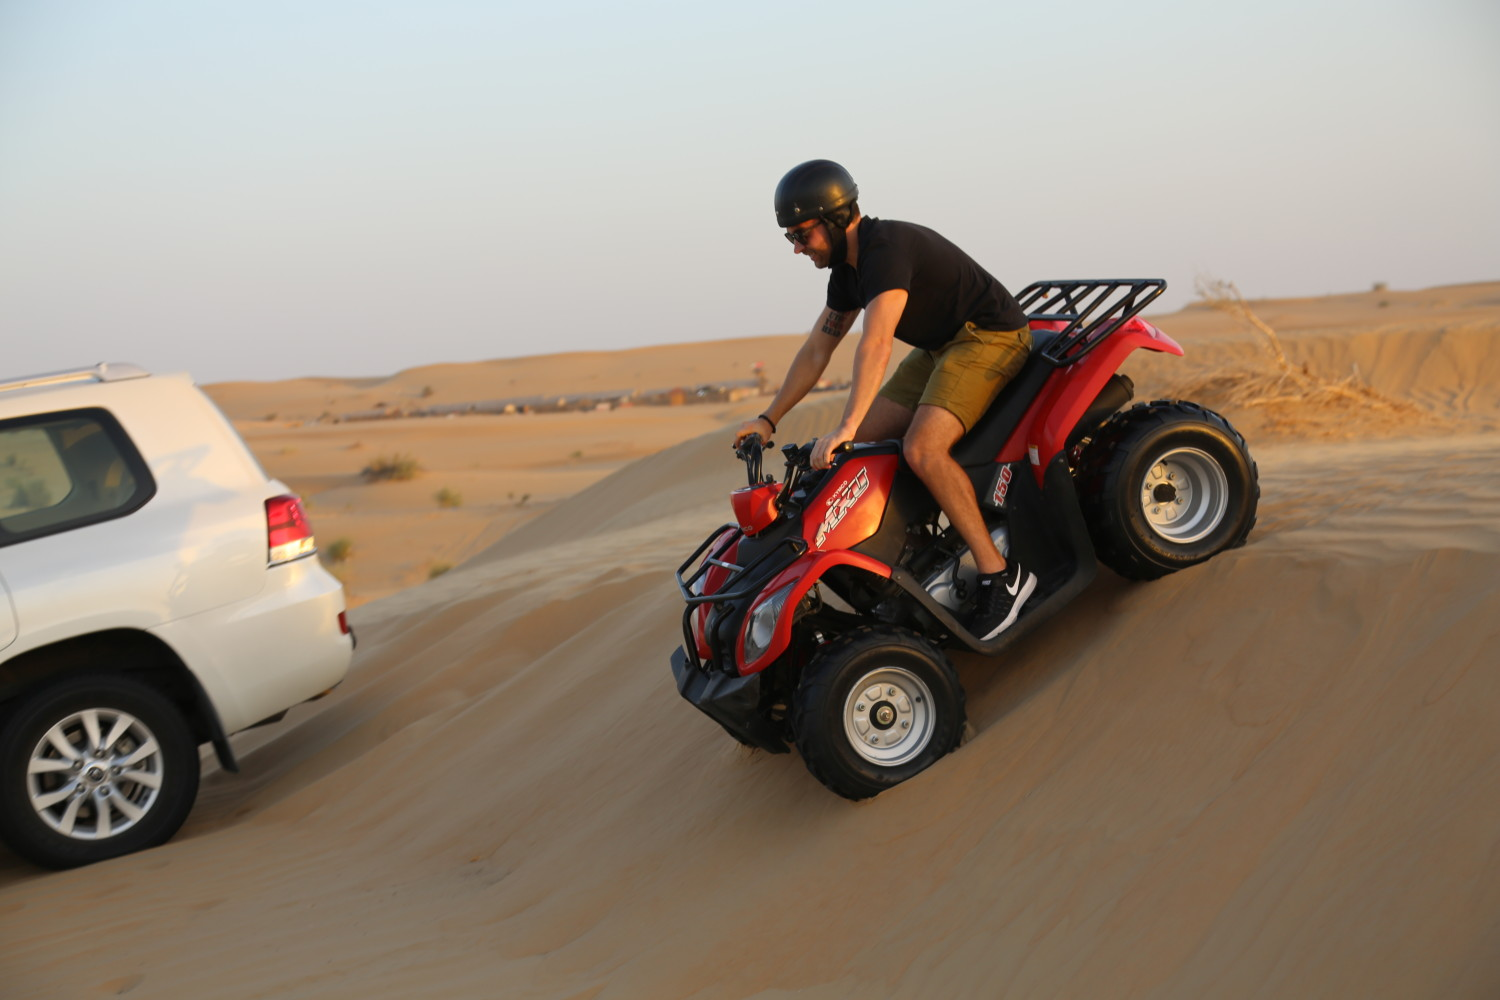 atv riding on my desert safari Dubai